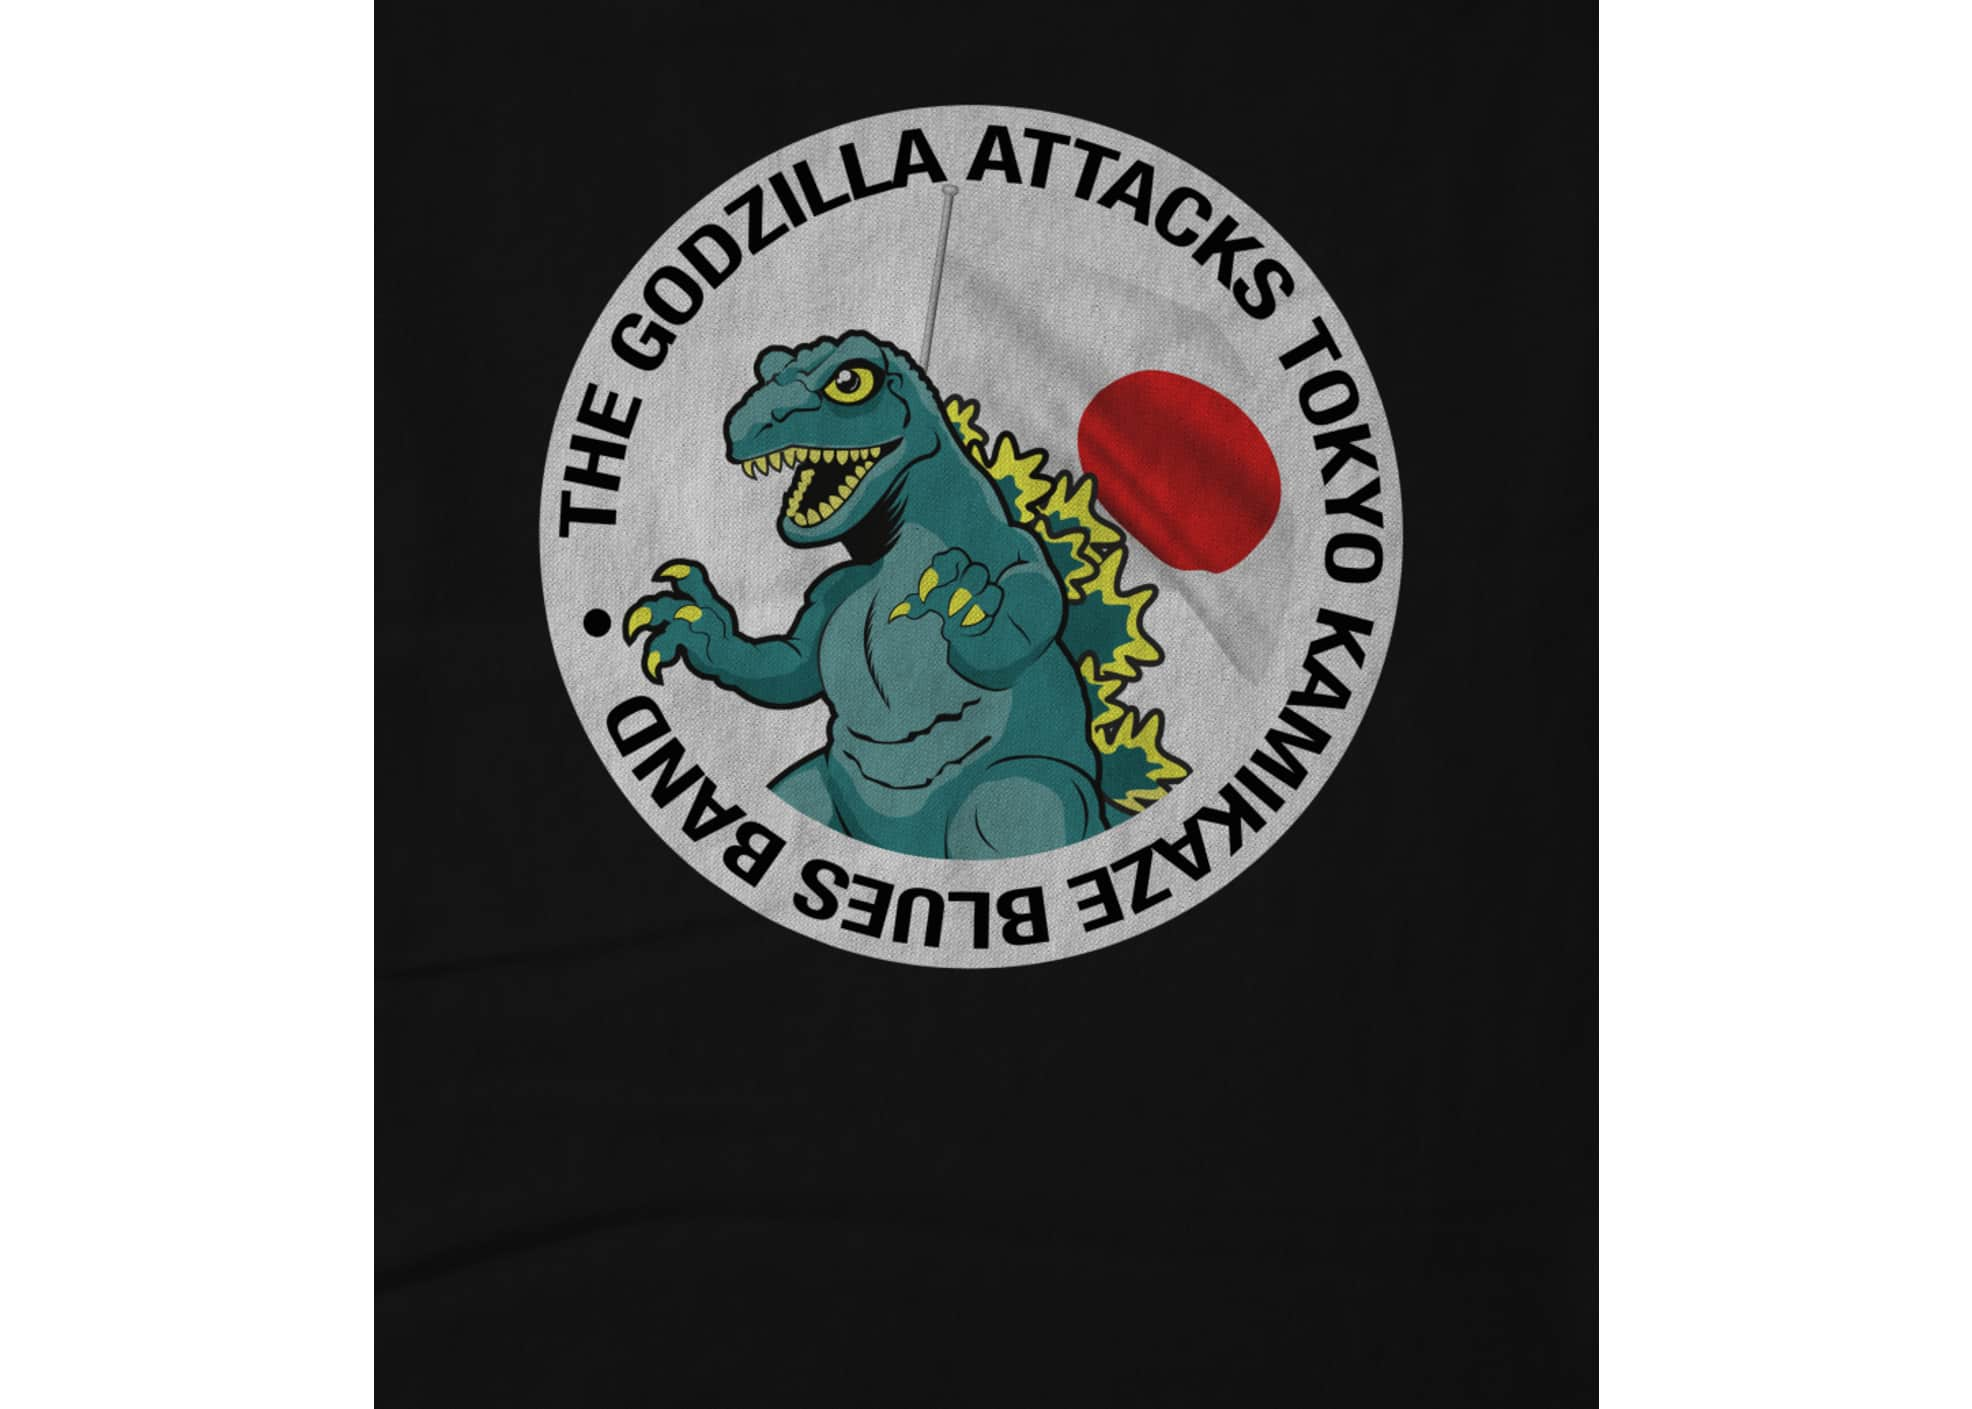 The godzilla attacks tokyo kamikaze blues band  godzilla logo shirt 1601408803